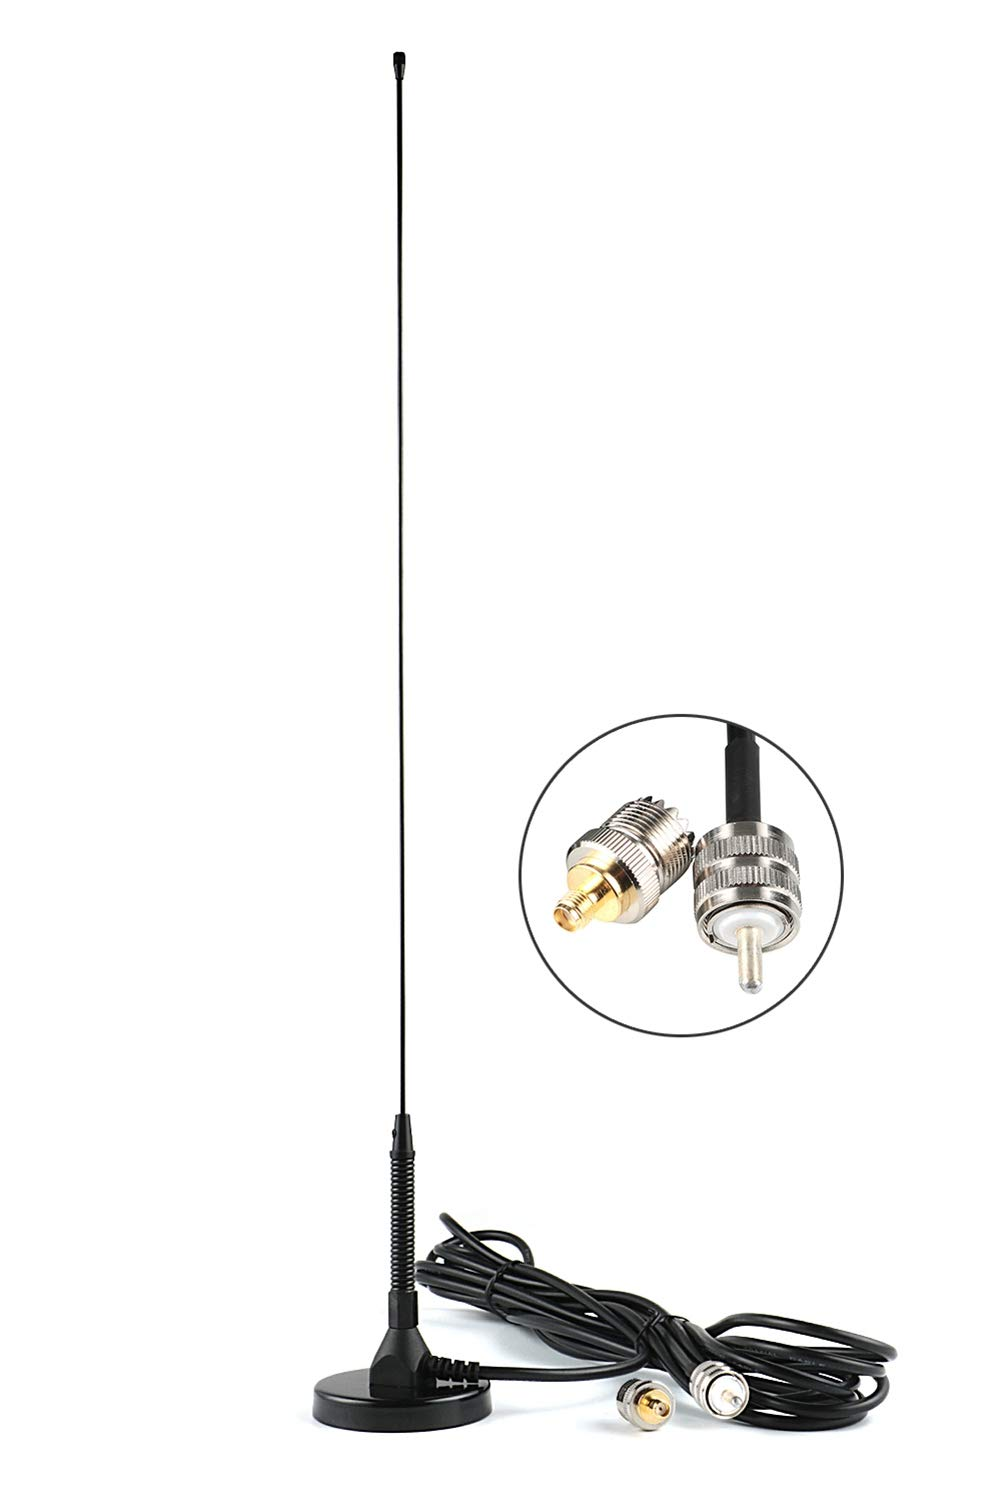 KCTIN CB Antenna UT-72 Dual-Band VHF/UHF (136-174, 400-470 Mhz) 19inch with PL-259 and SMA-F and 14FT Cable for CB Radios